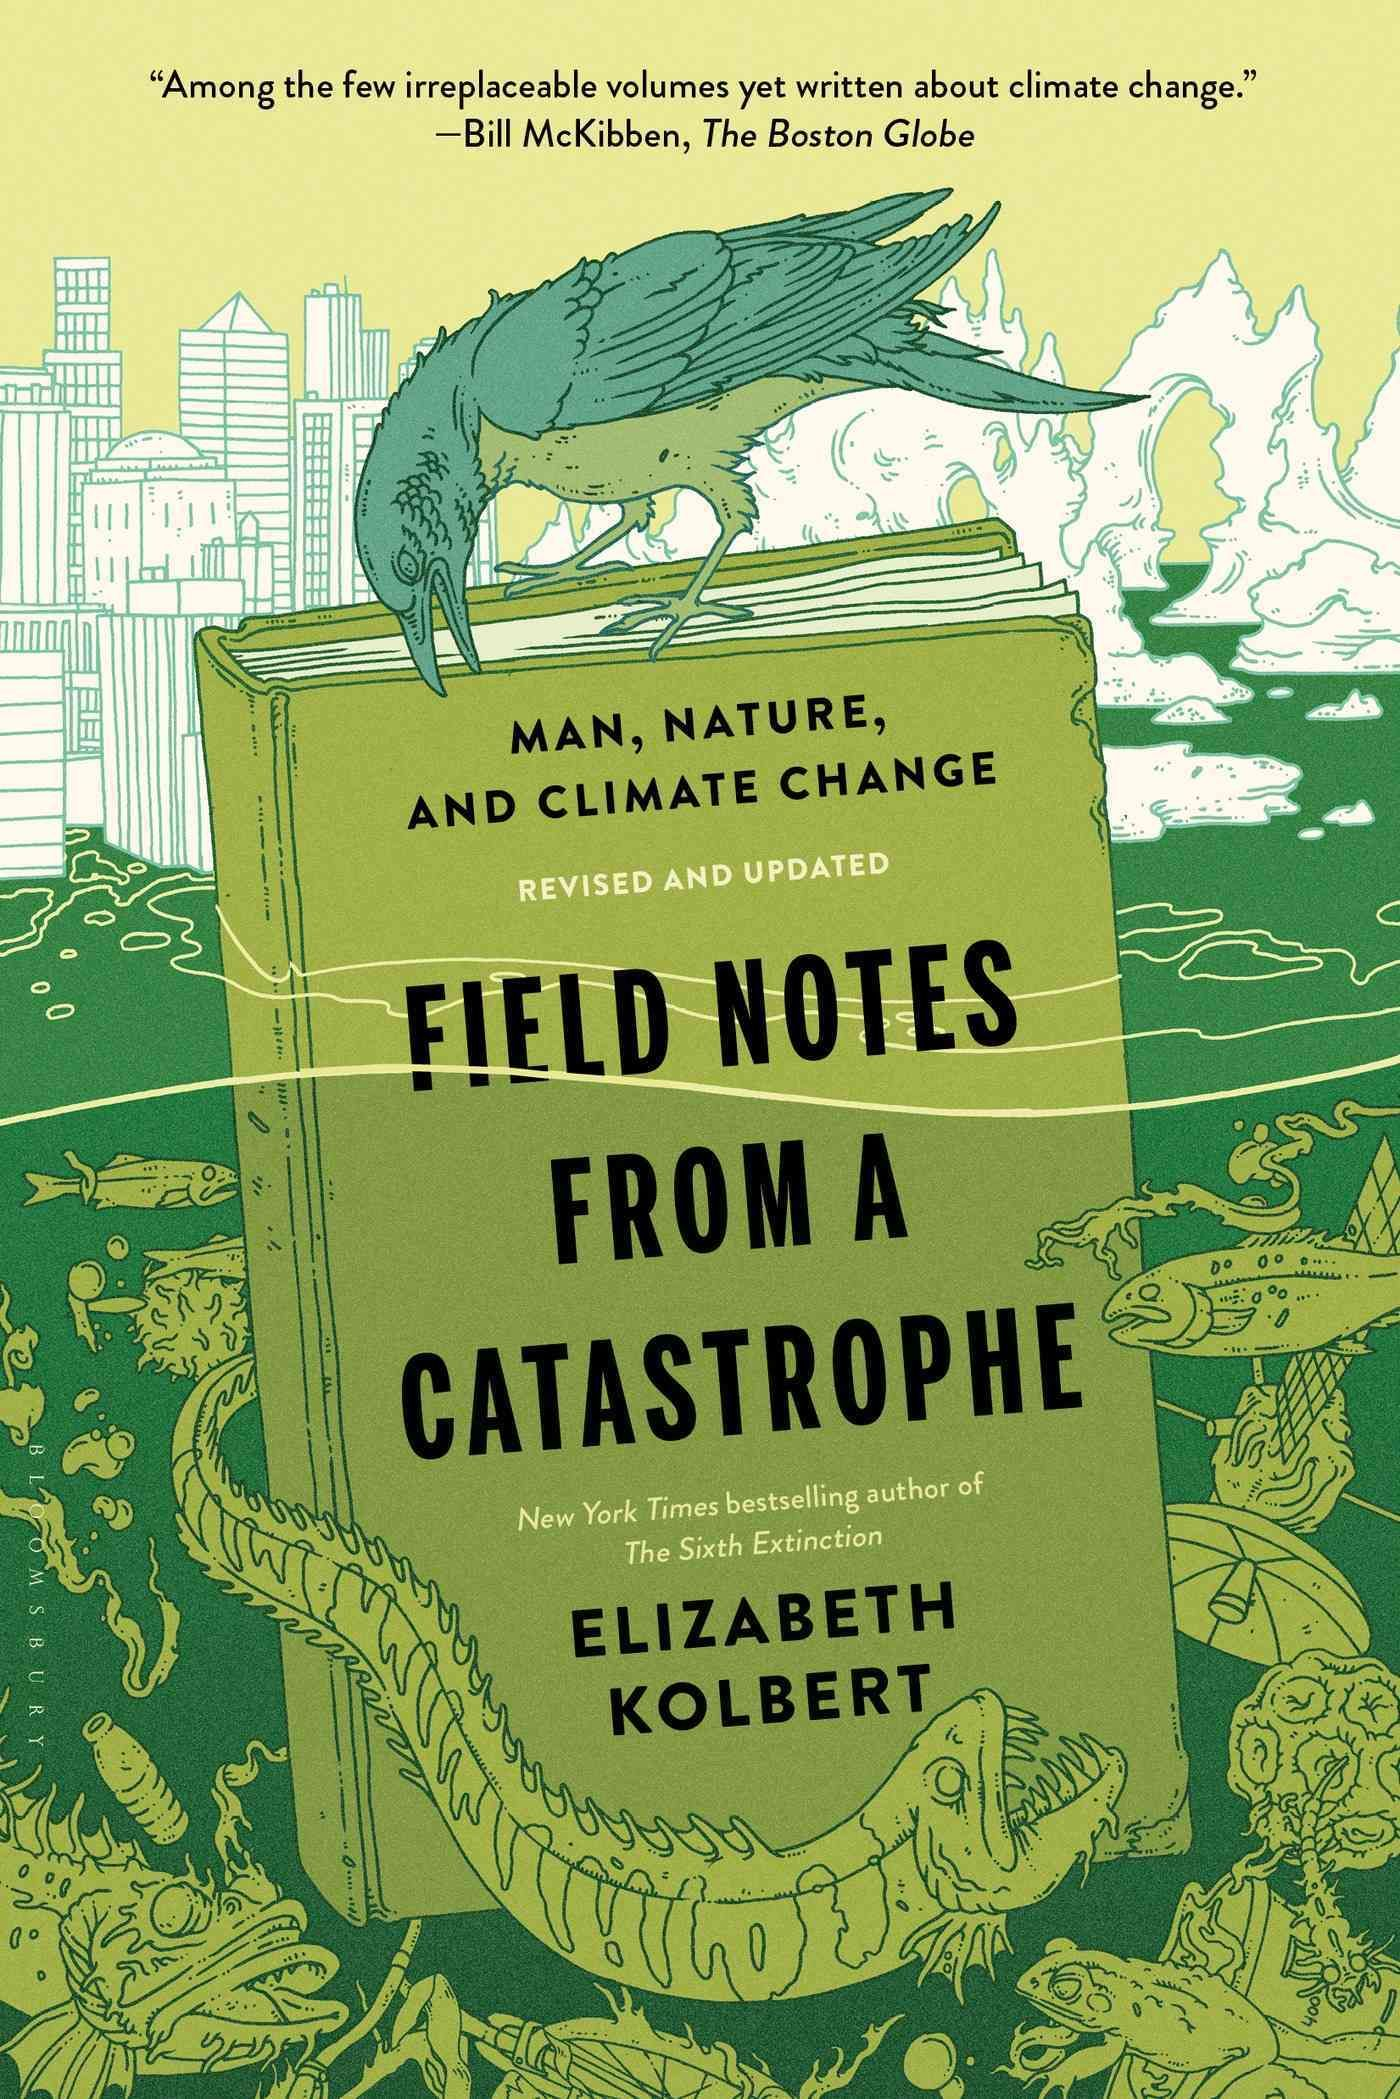 Field Notes from a Catastrophe Man, Nature, and Climate